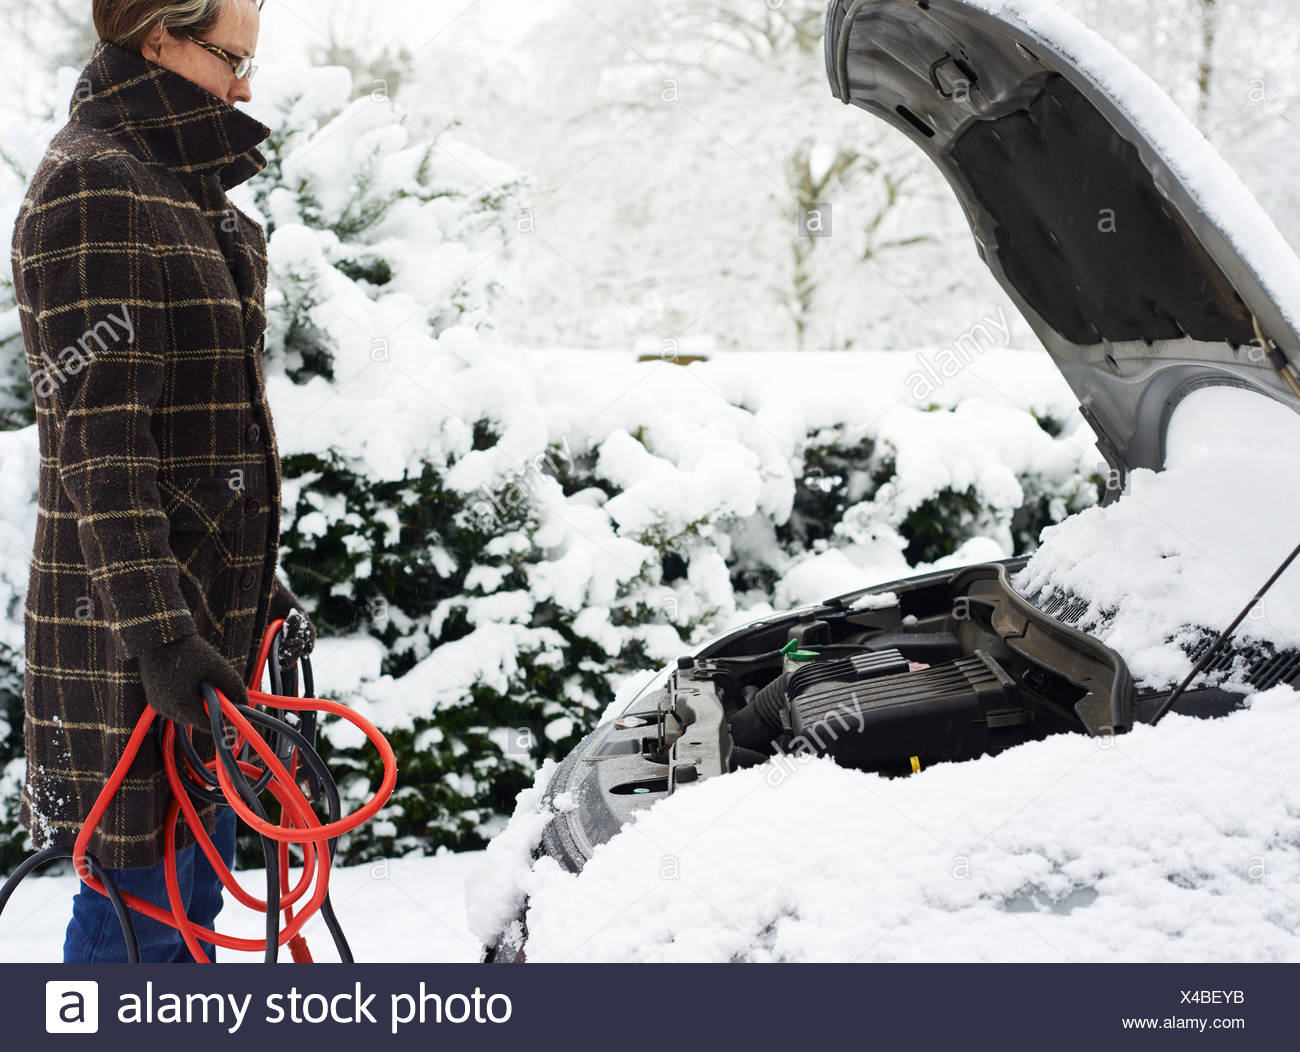 Woman working on broken down car in snow - Stock Image